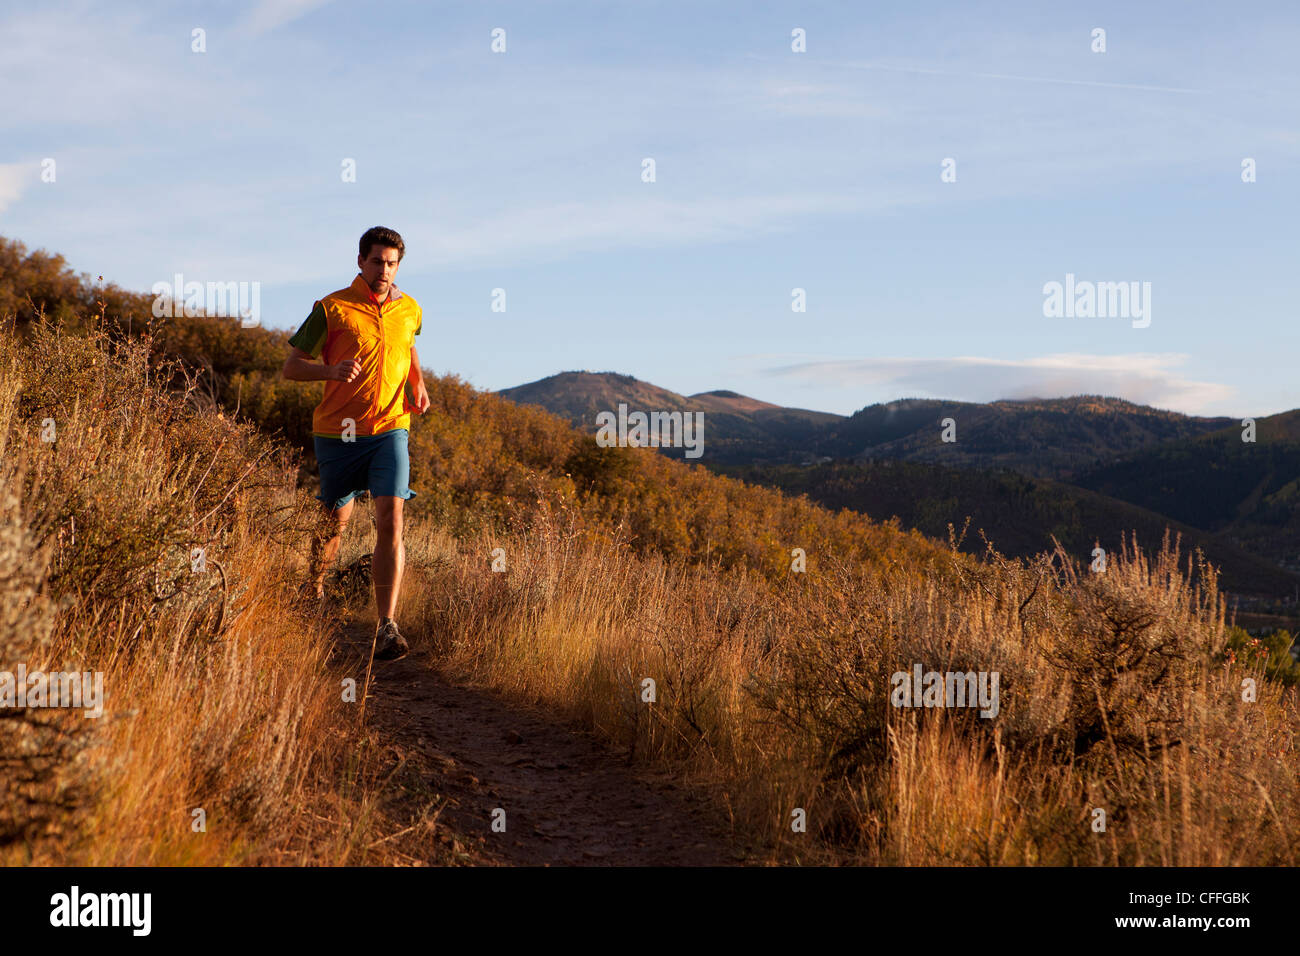 A man out for an early evening run. - Stock Image